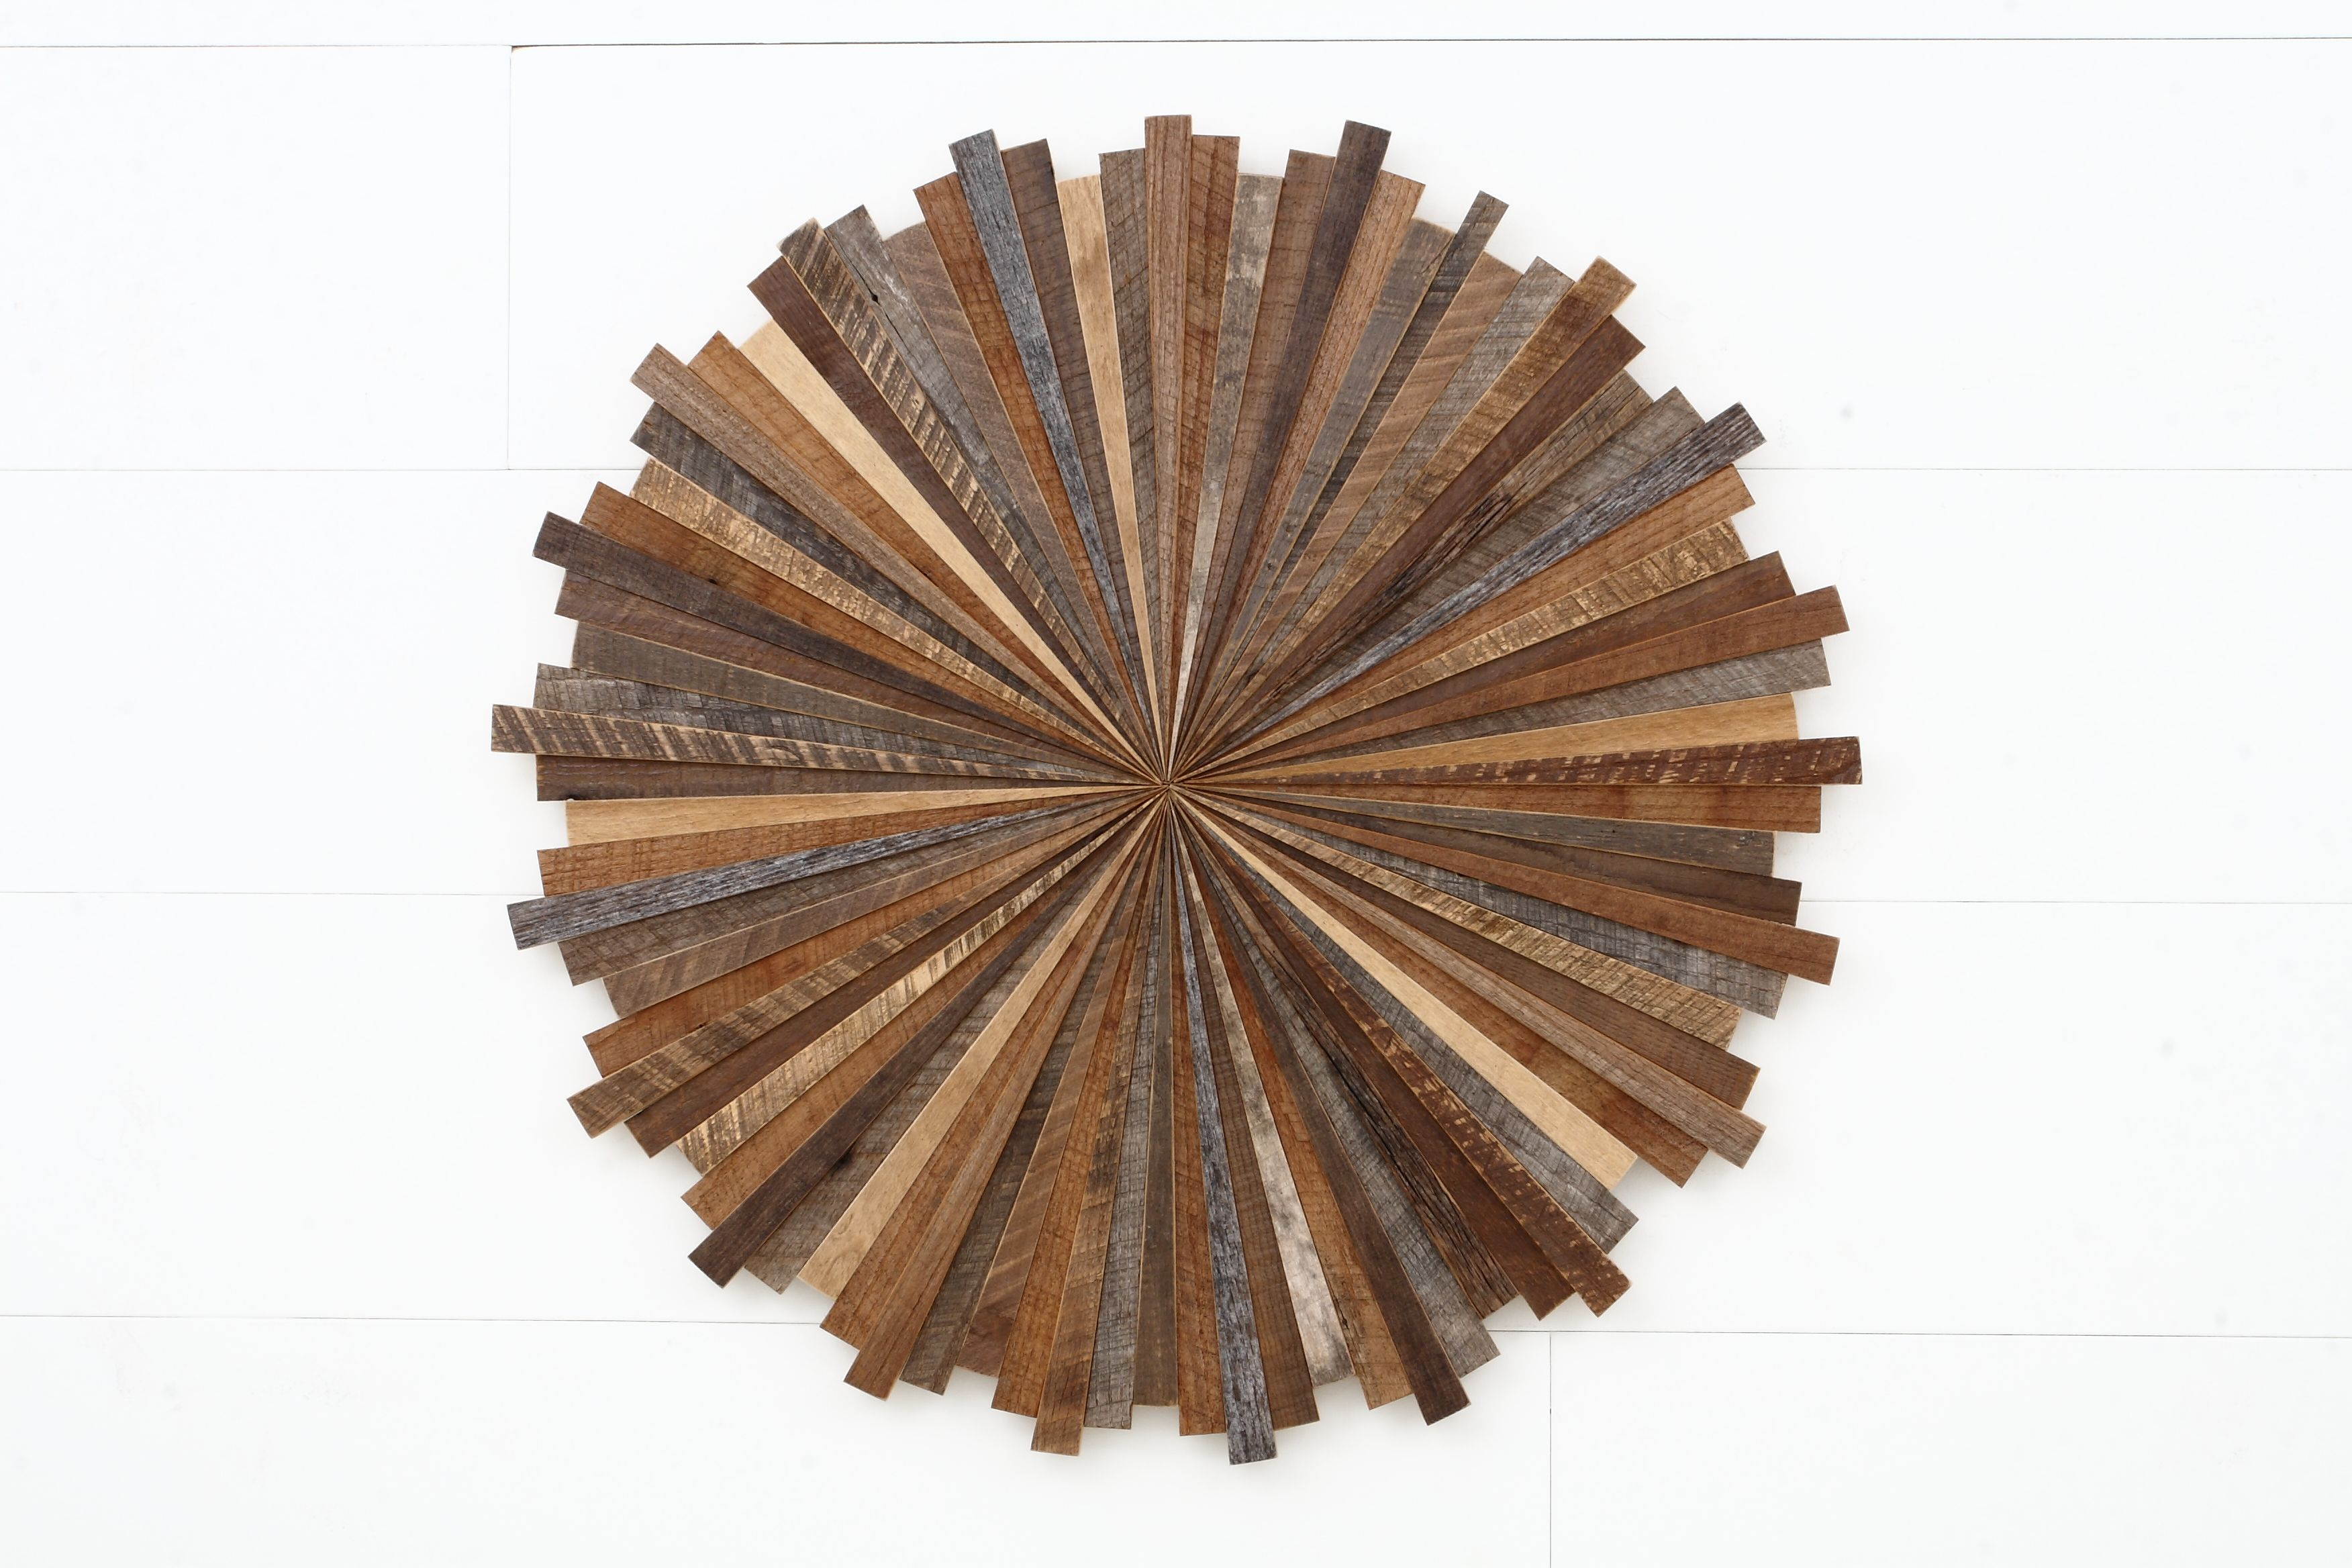 Hand Crafted Starburst Wood Wall Art Made With Old